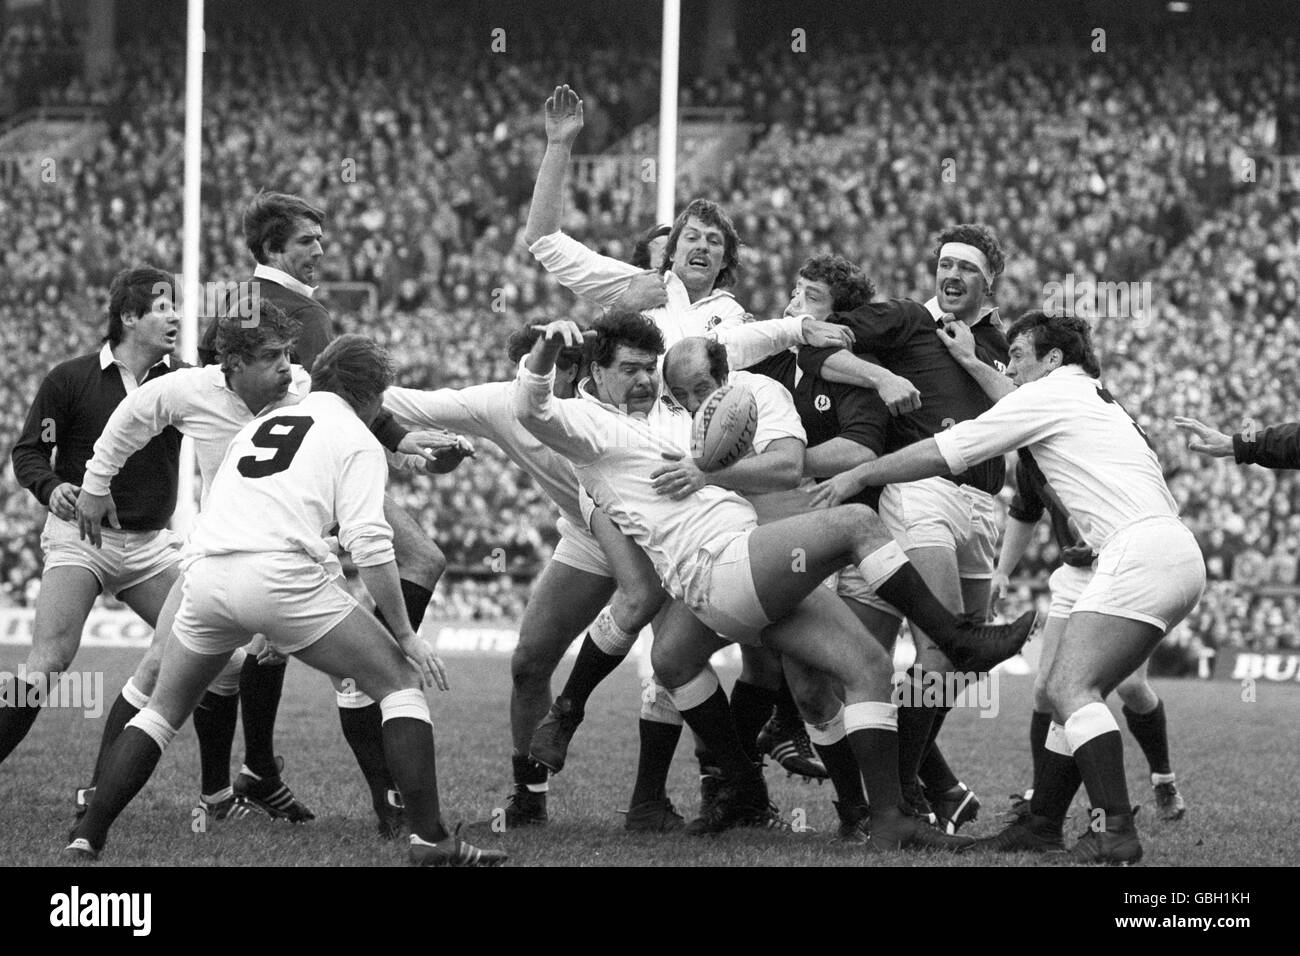 Rugby Union - Five Nations Championship - Calcutta Cup - England v Scotland - Twickenham - Stock Image